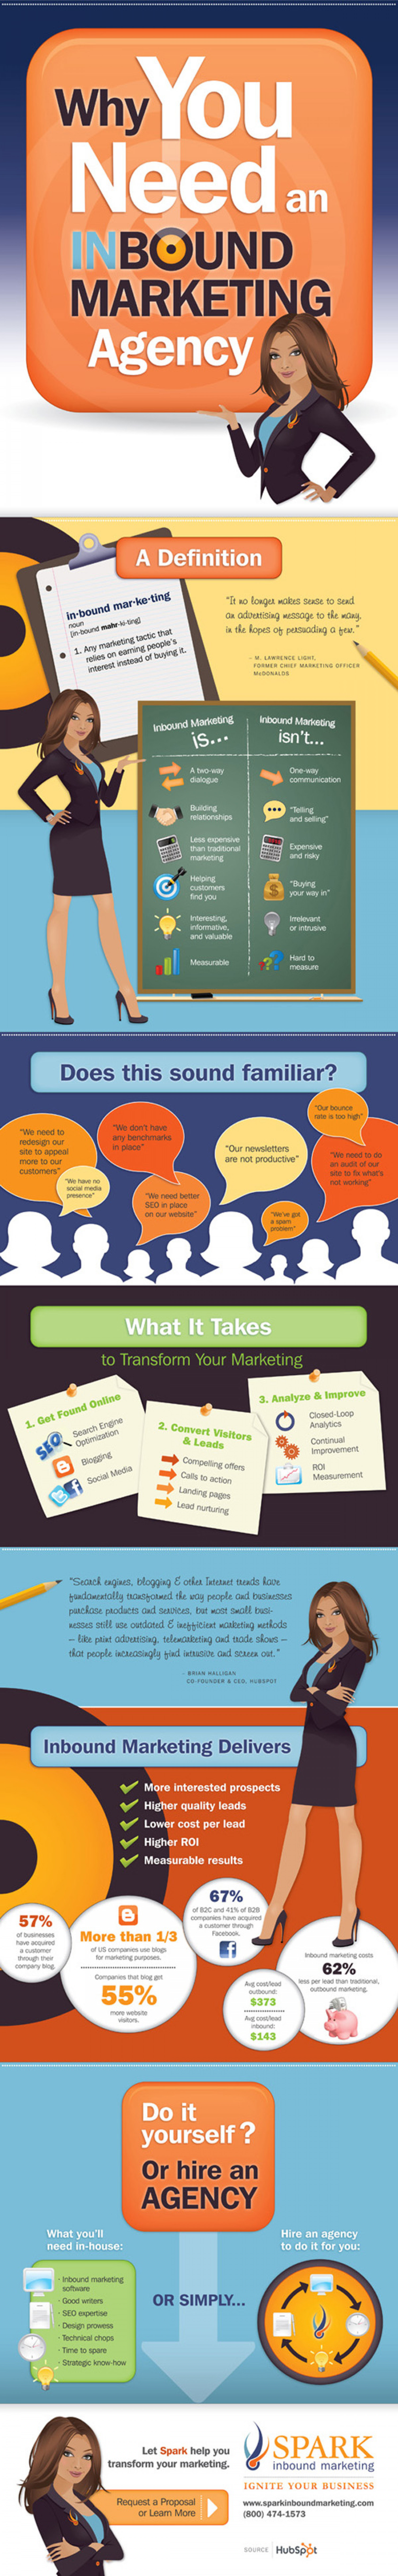 Why You Need an Inbound Marketing Agency Infographic